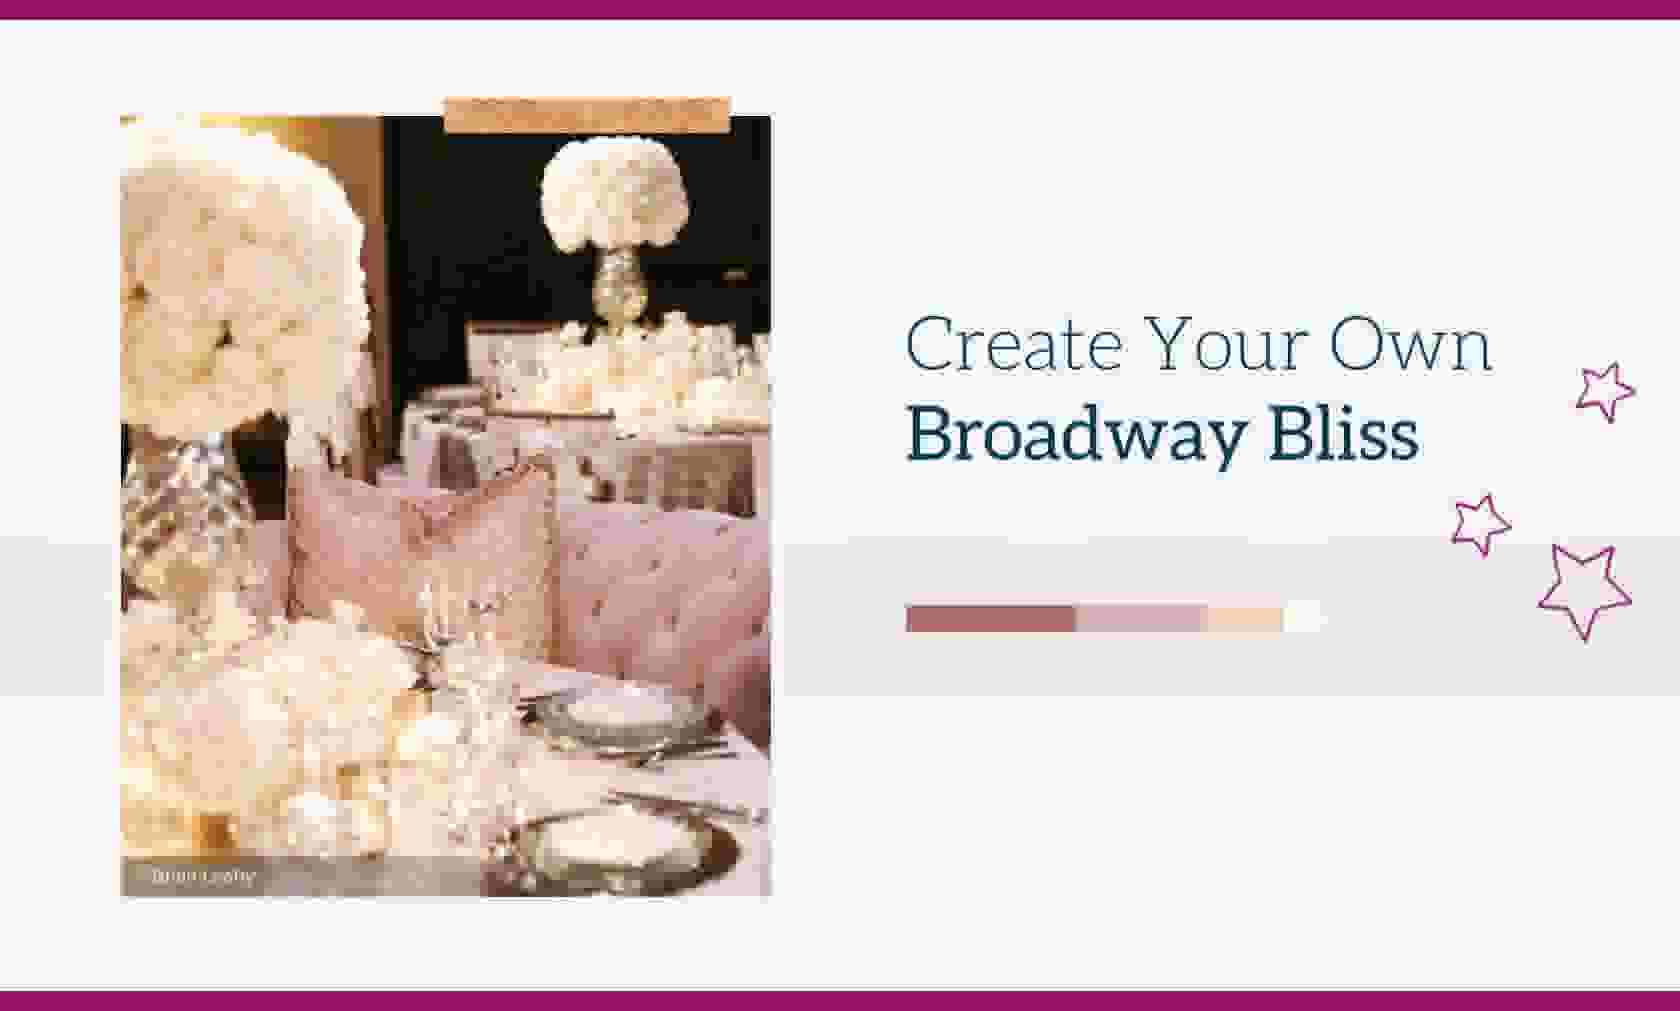 Create Your Own Broadway Bliss